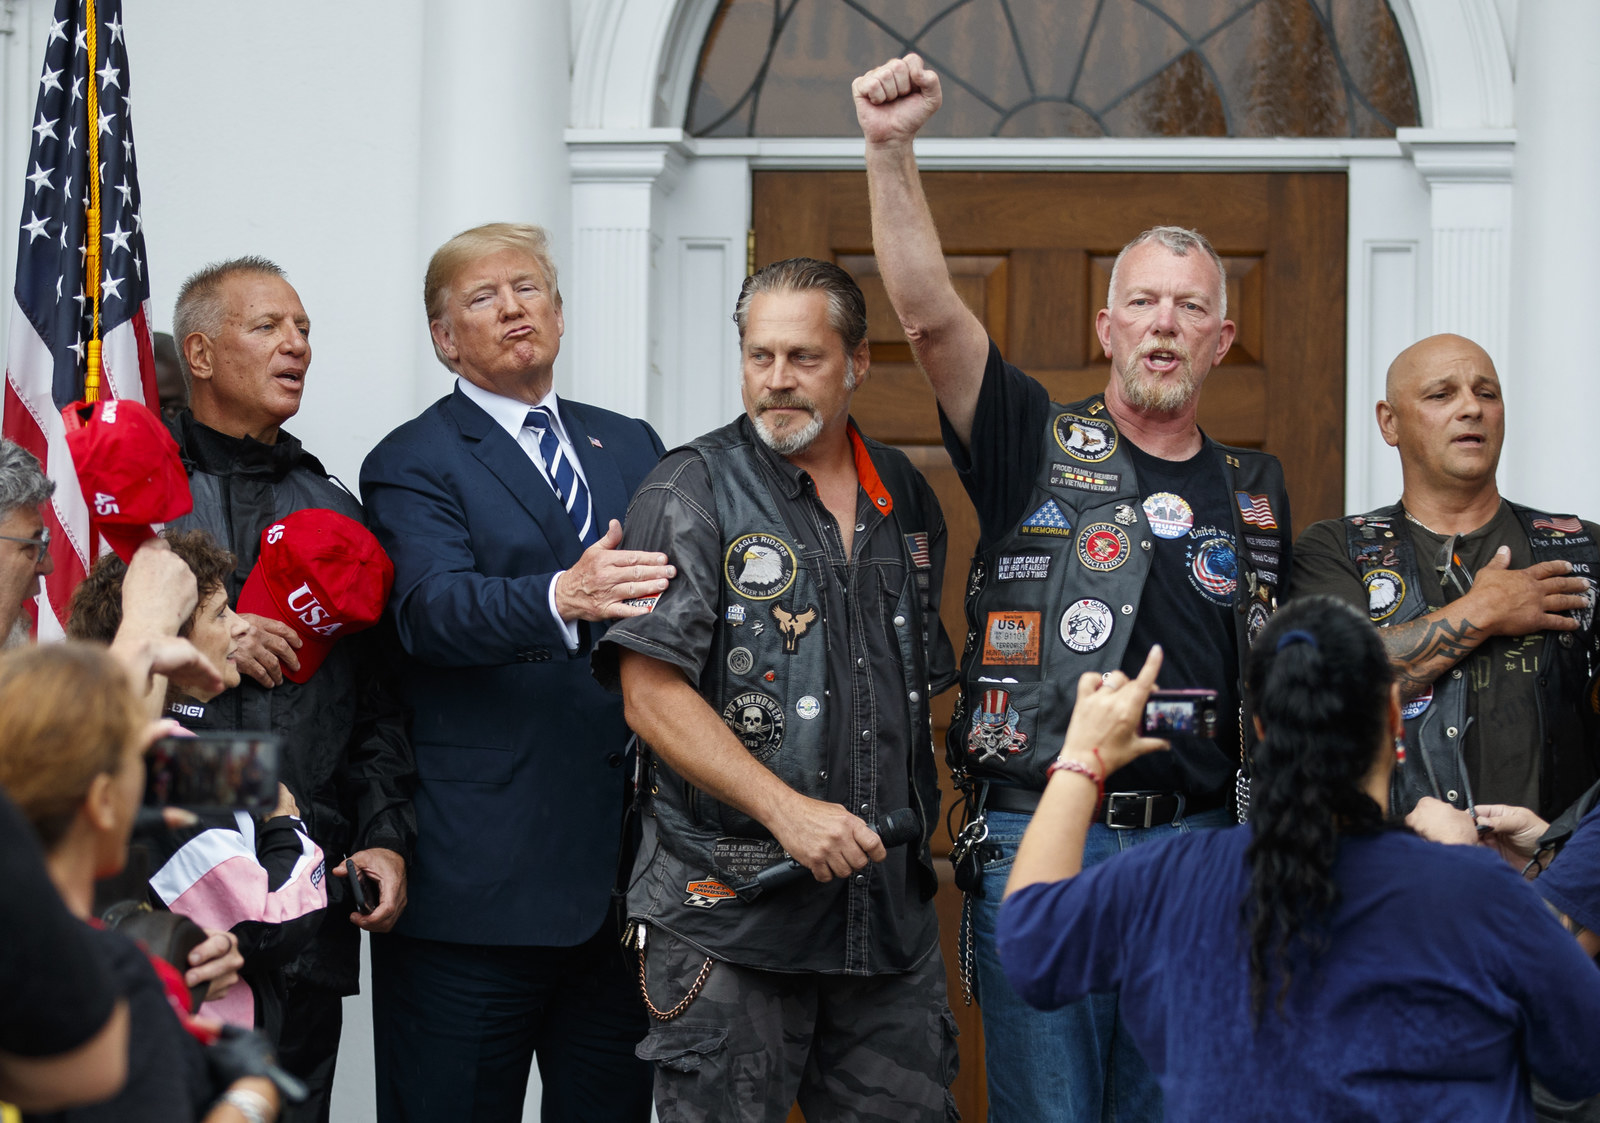 Trump with members of Bikers for Trump at the clubhouse of Trump National Golf Club on Aug. 11.